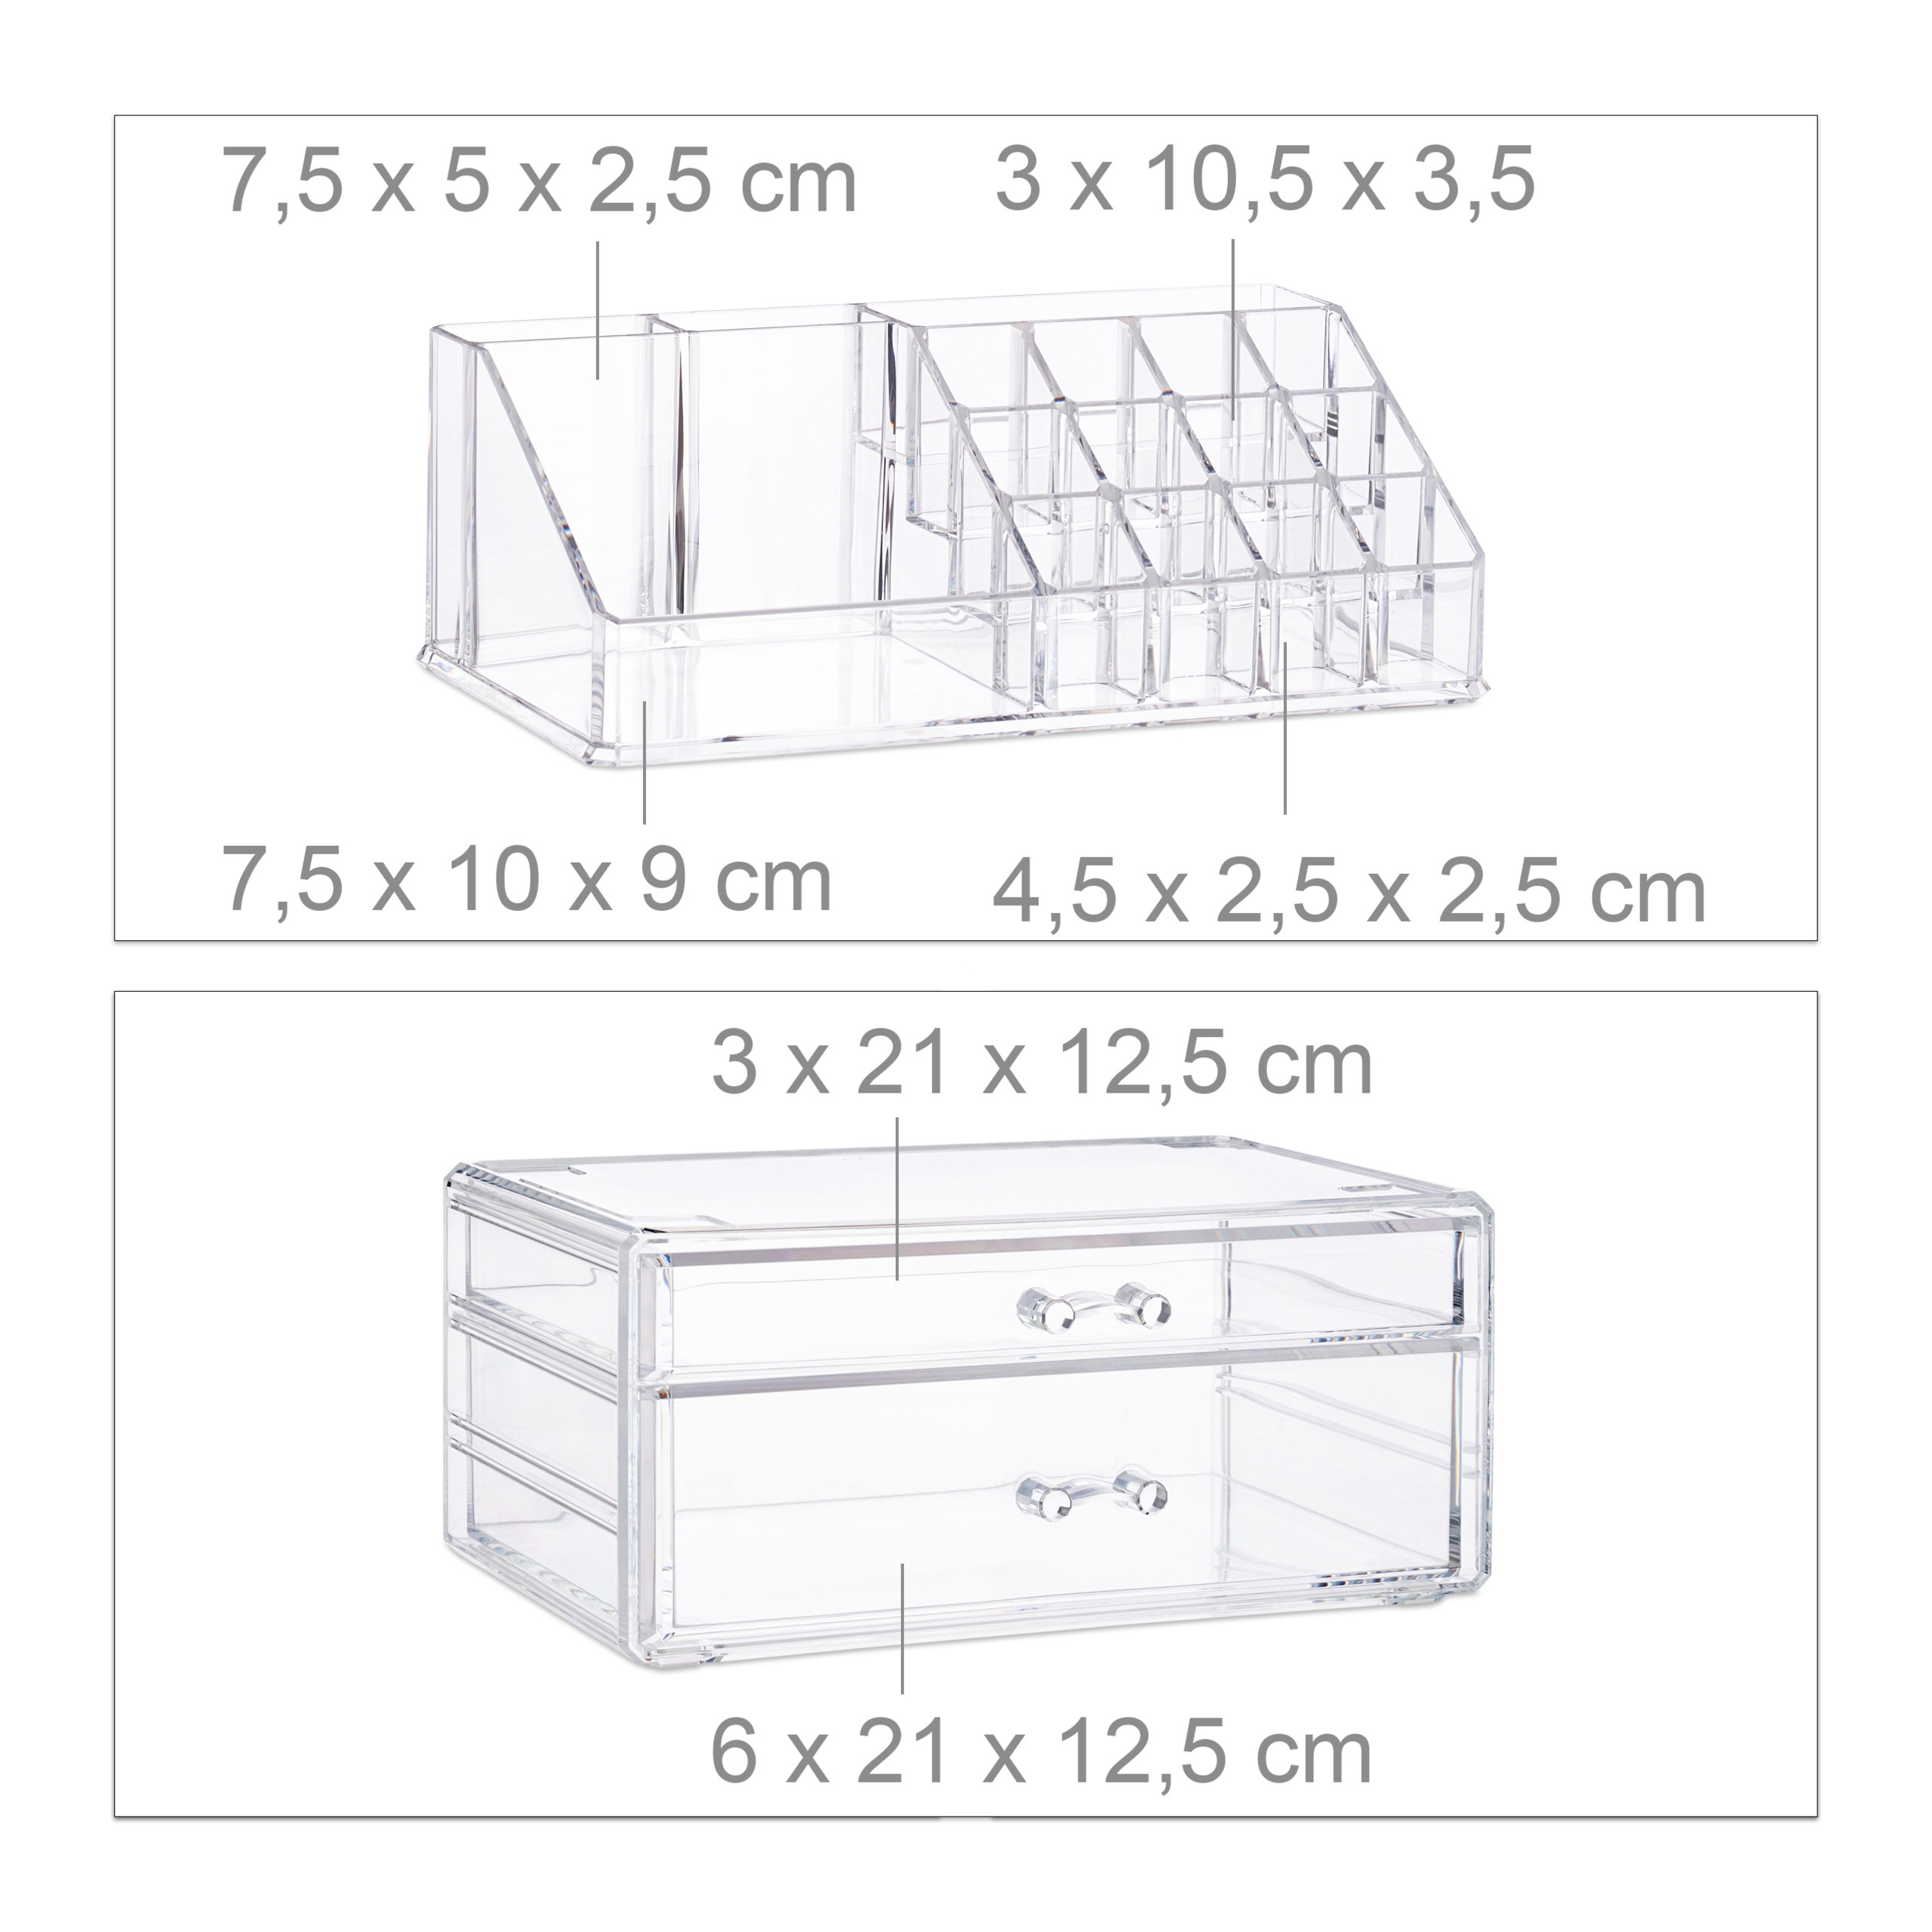 Cosmetic-Organiser-with-2-Drawers-Acrylic-Makeup-Kit-Lipstick-Holder-Large thumbnail 6